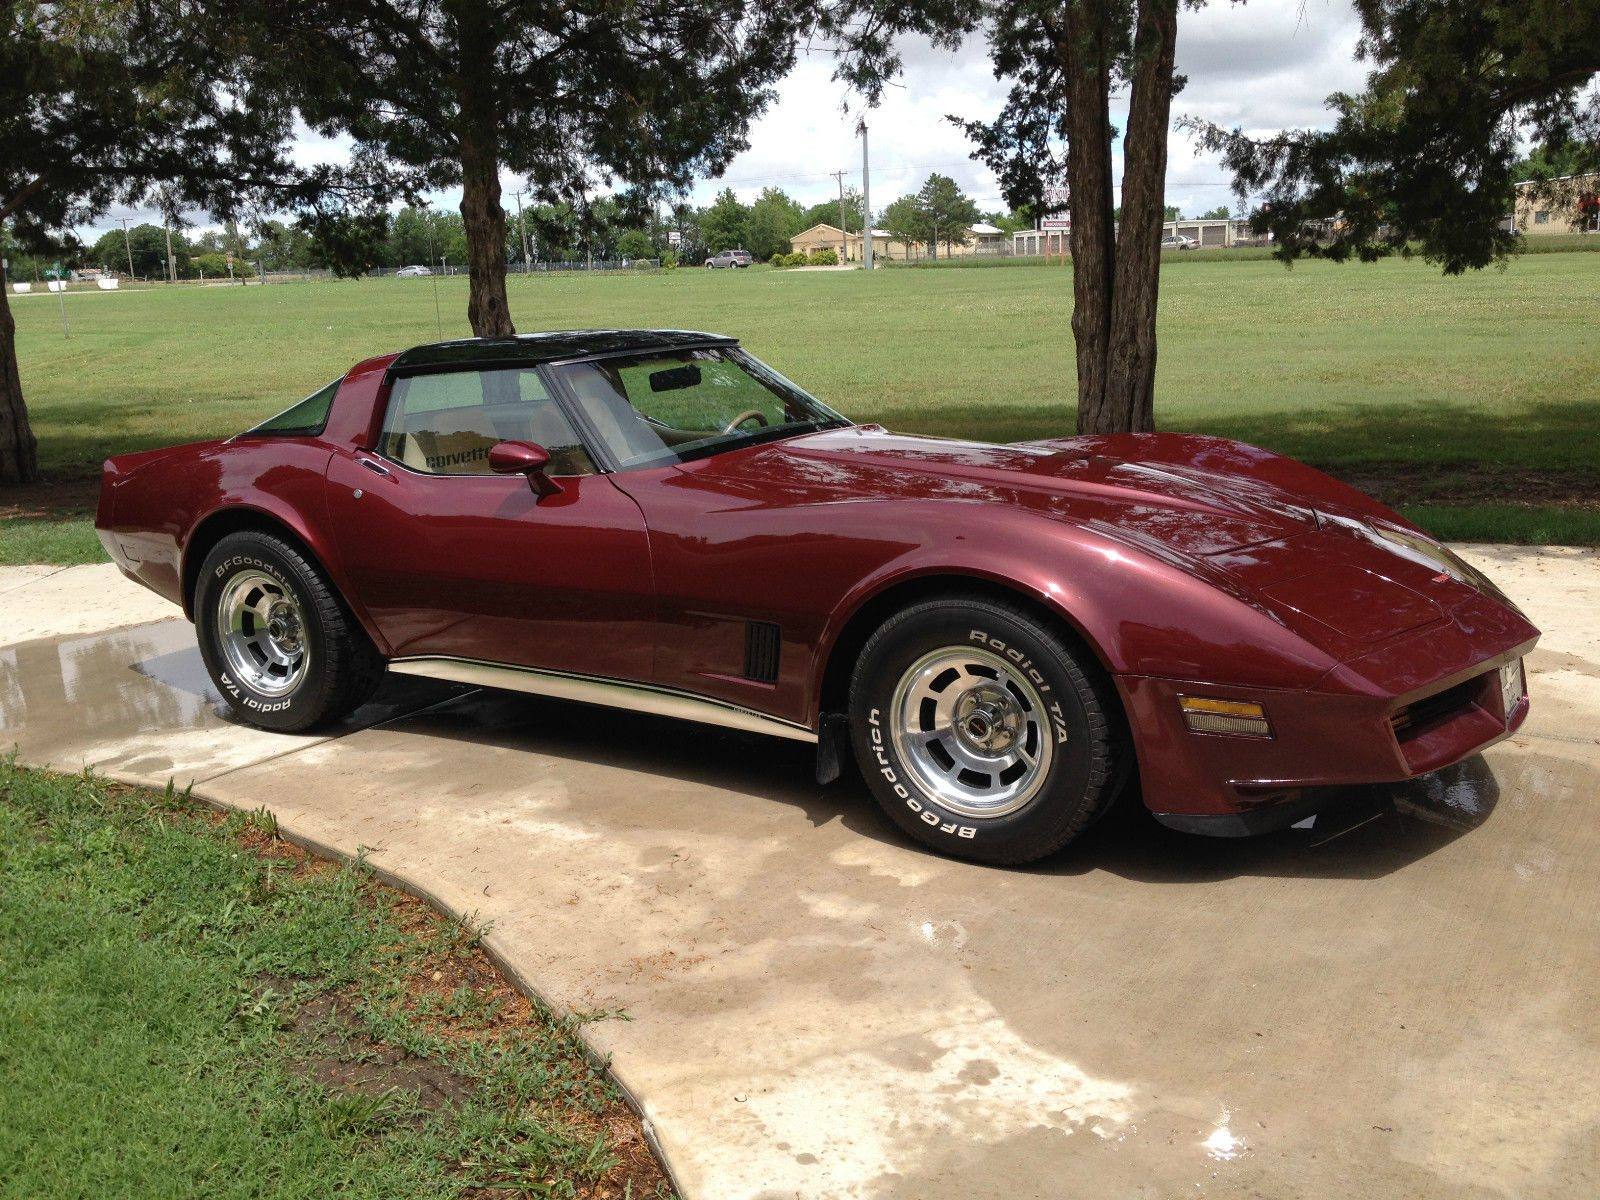 1961 Corvette For Sale >> 1981 C3 Corvette | Image Gallery & Pictures